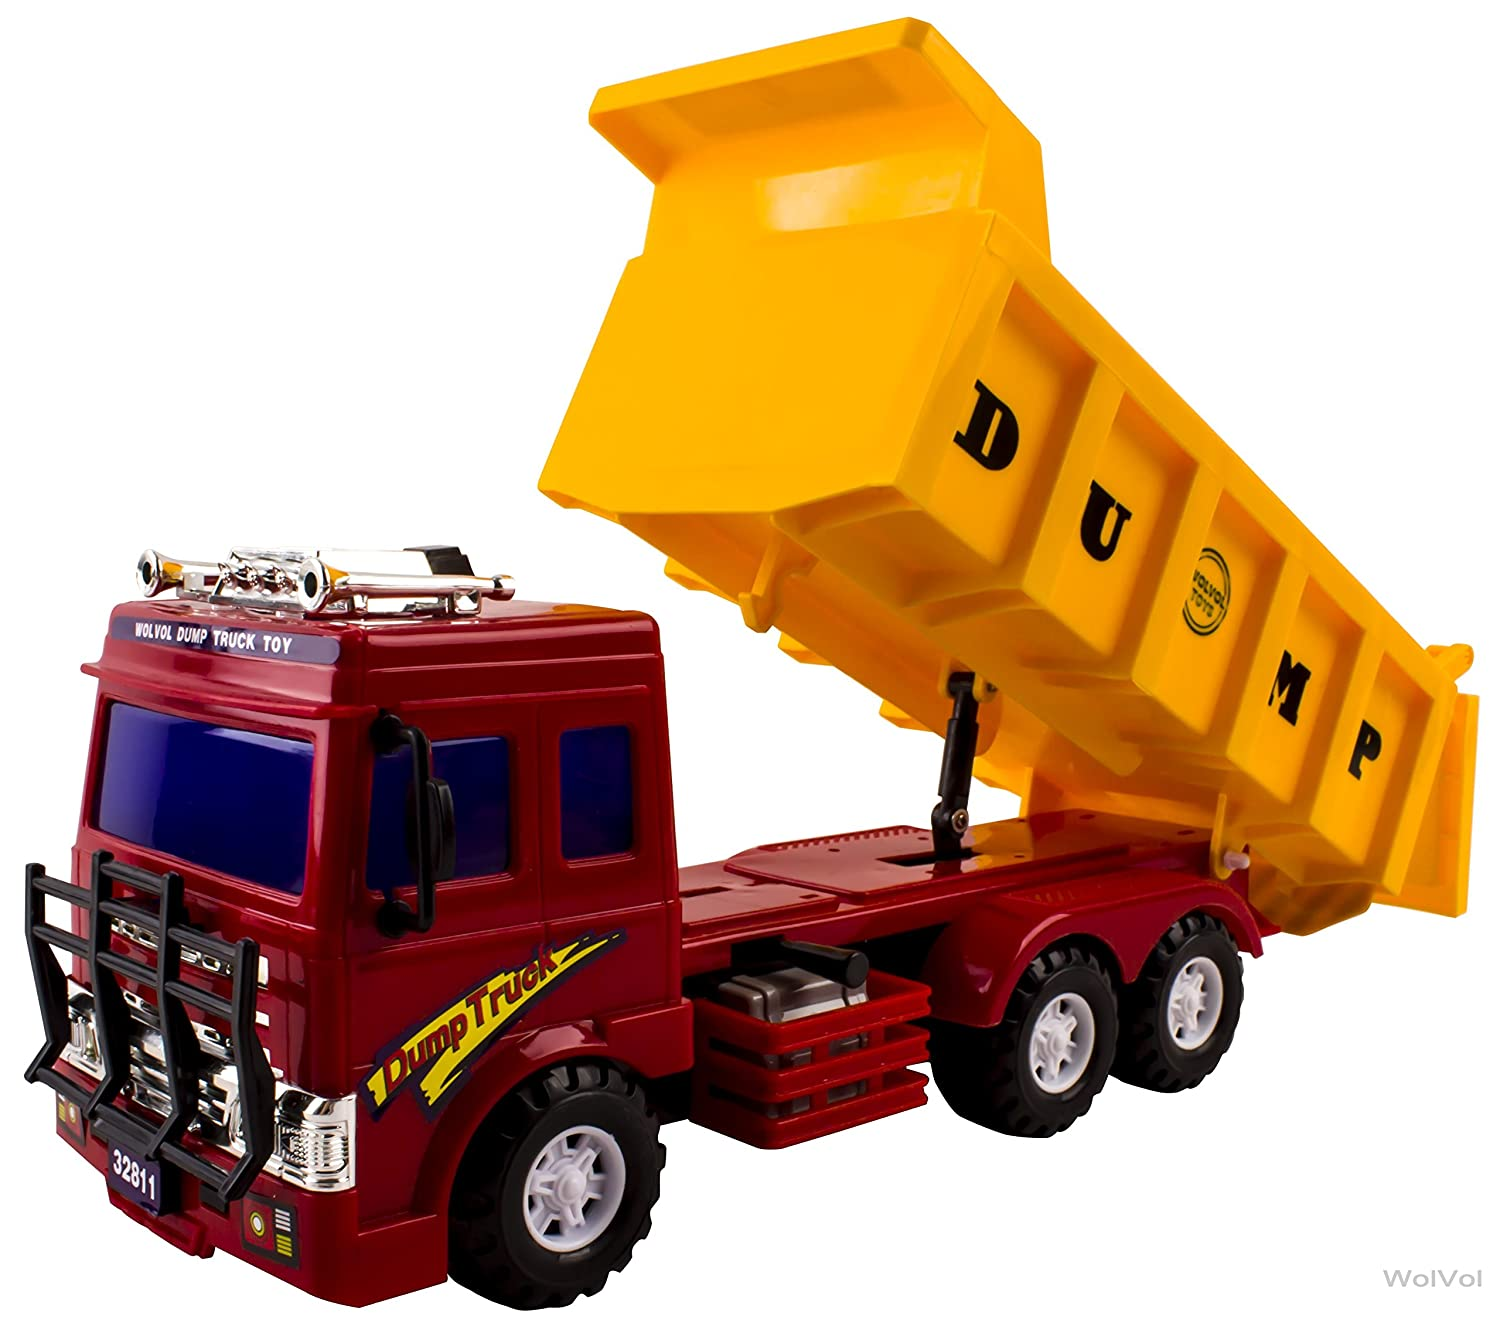 amazon com wolvol big dump truck toy for kids with friction power